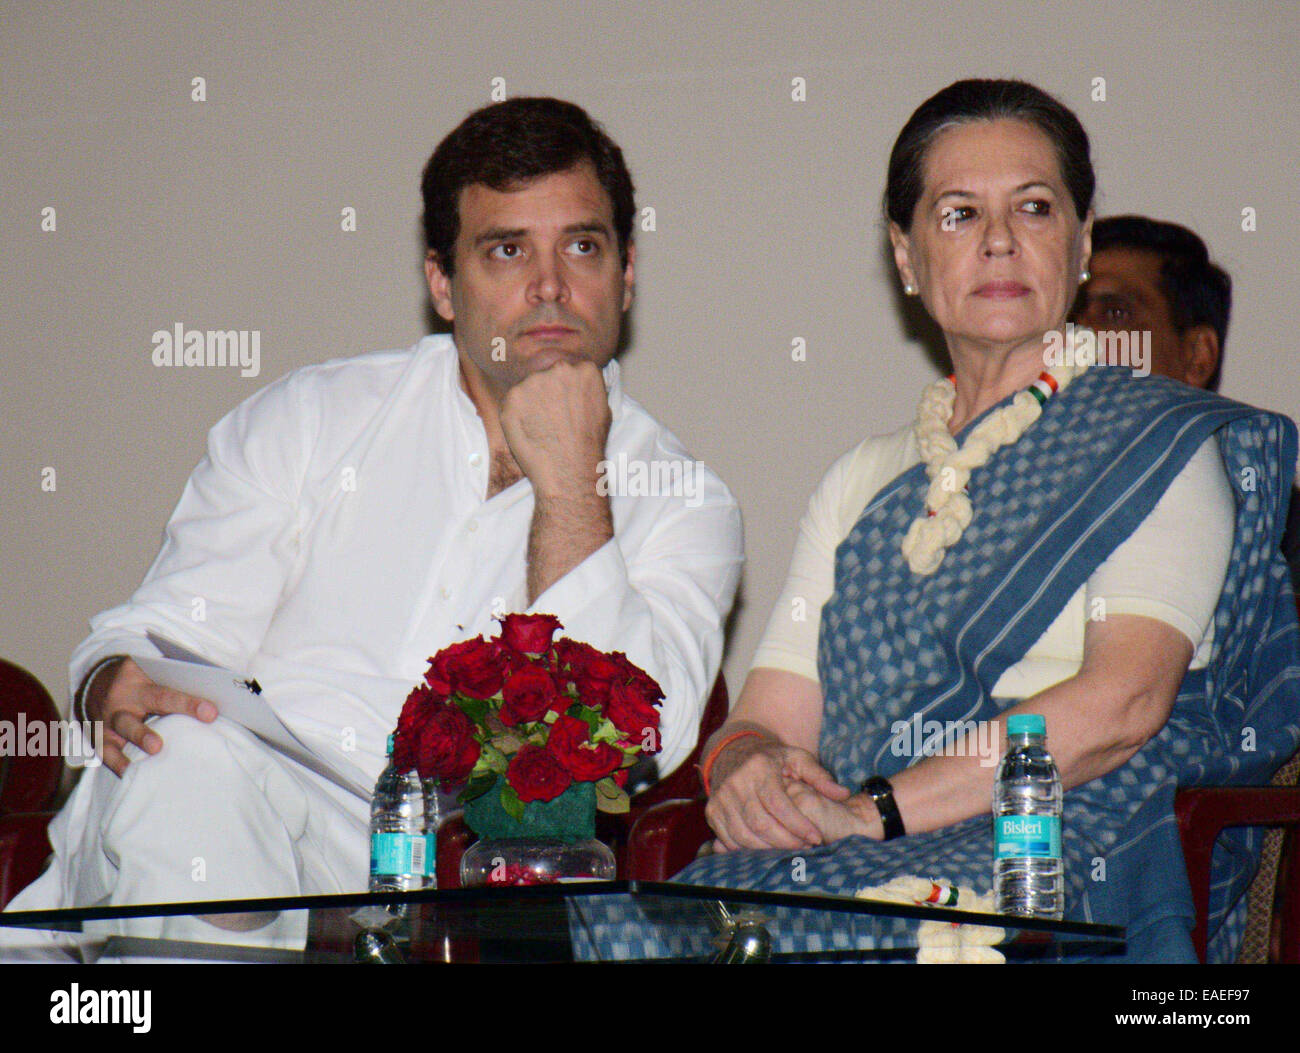 New Delhi, India. 13th Nov, 2014. India's Congress party President Sonia Gandhi (R) and vice president Rahul Gandhi Stock Photo